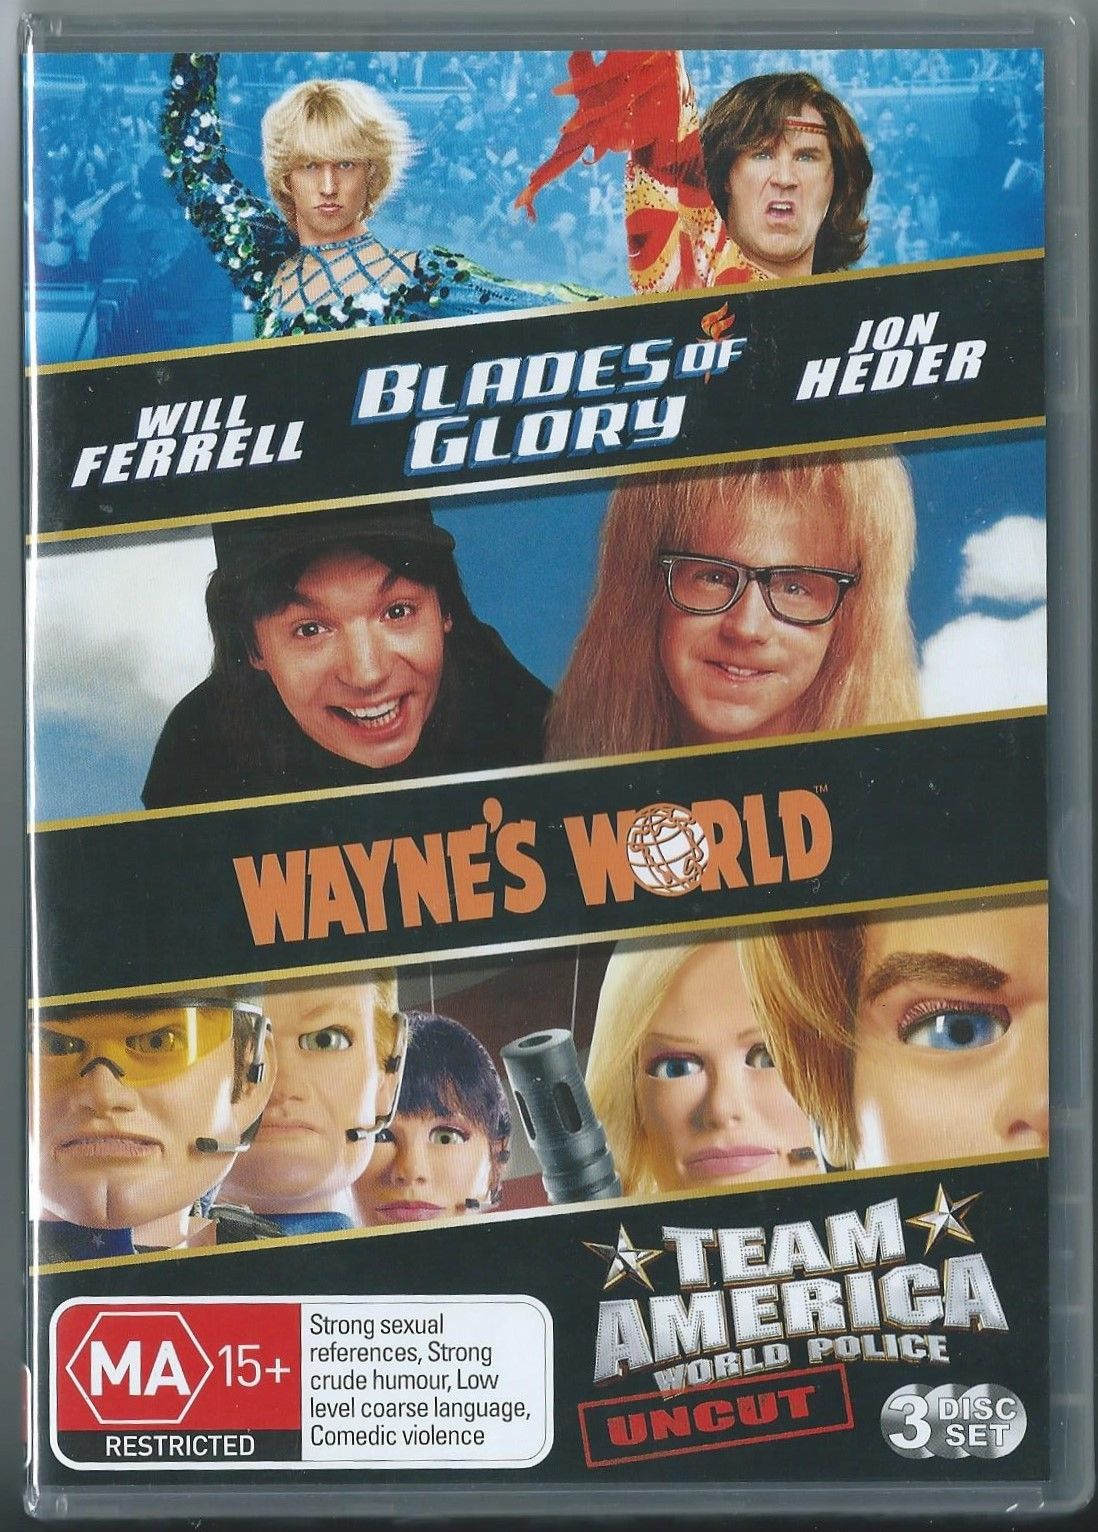 DVD - Blades of Glory / Wayne's World / Team A (Preowned)